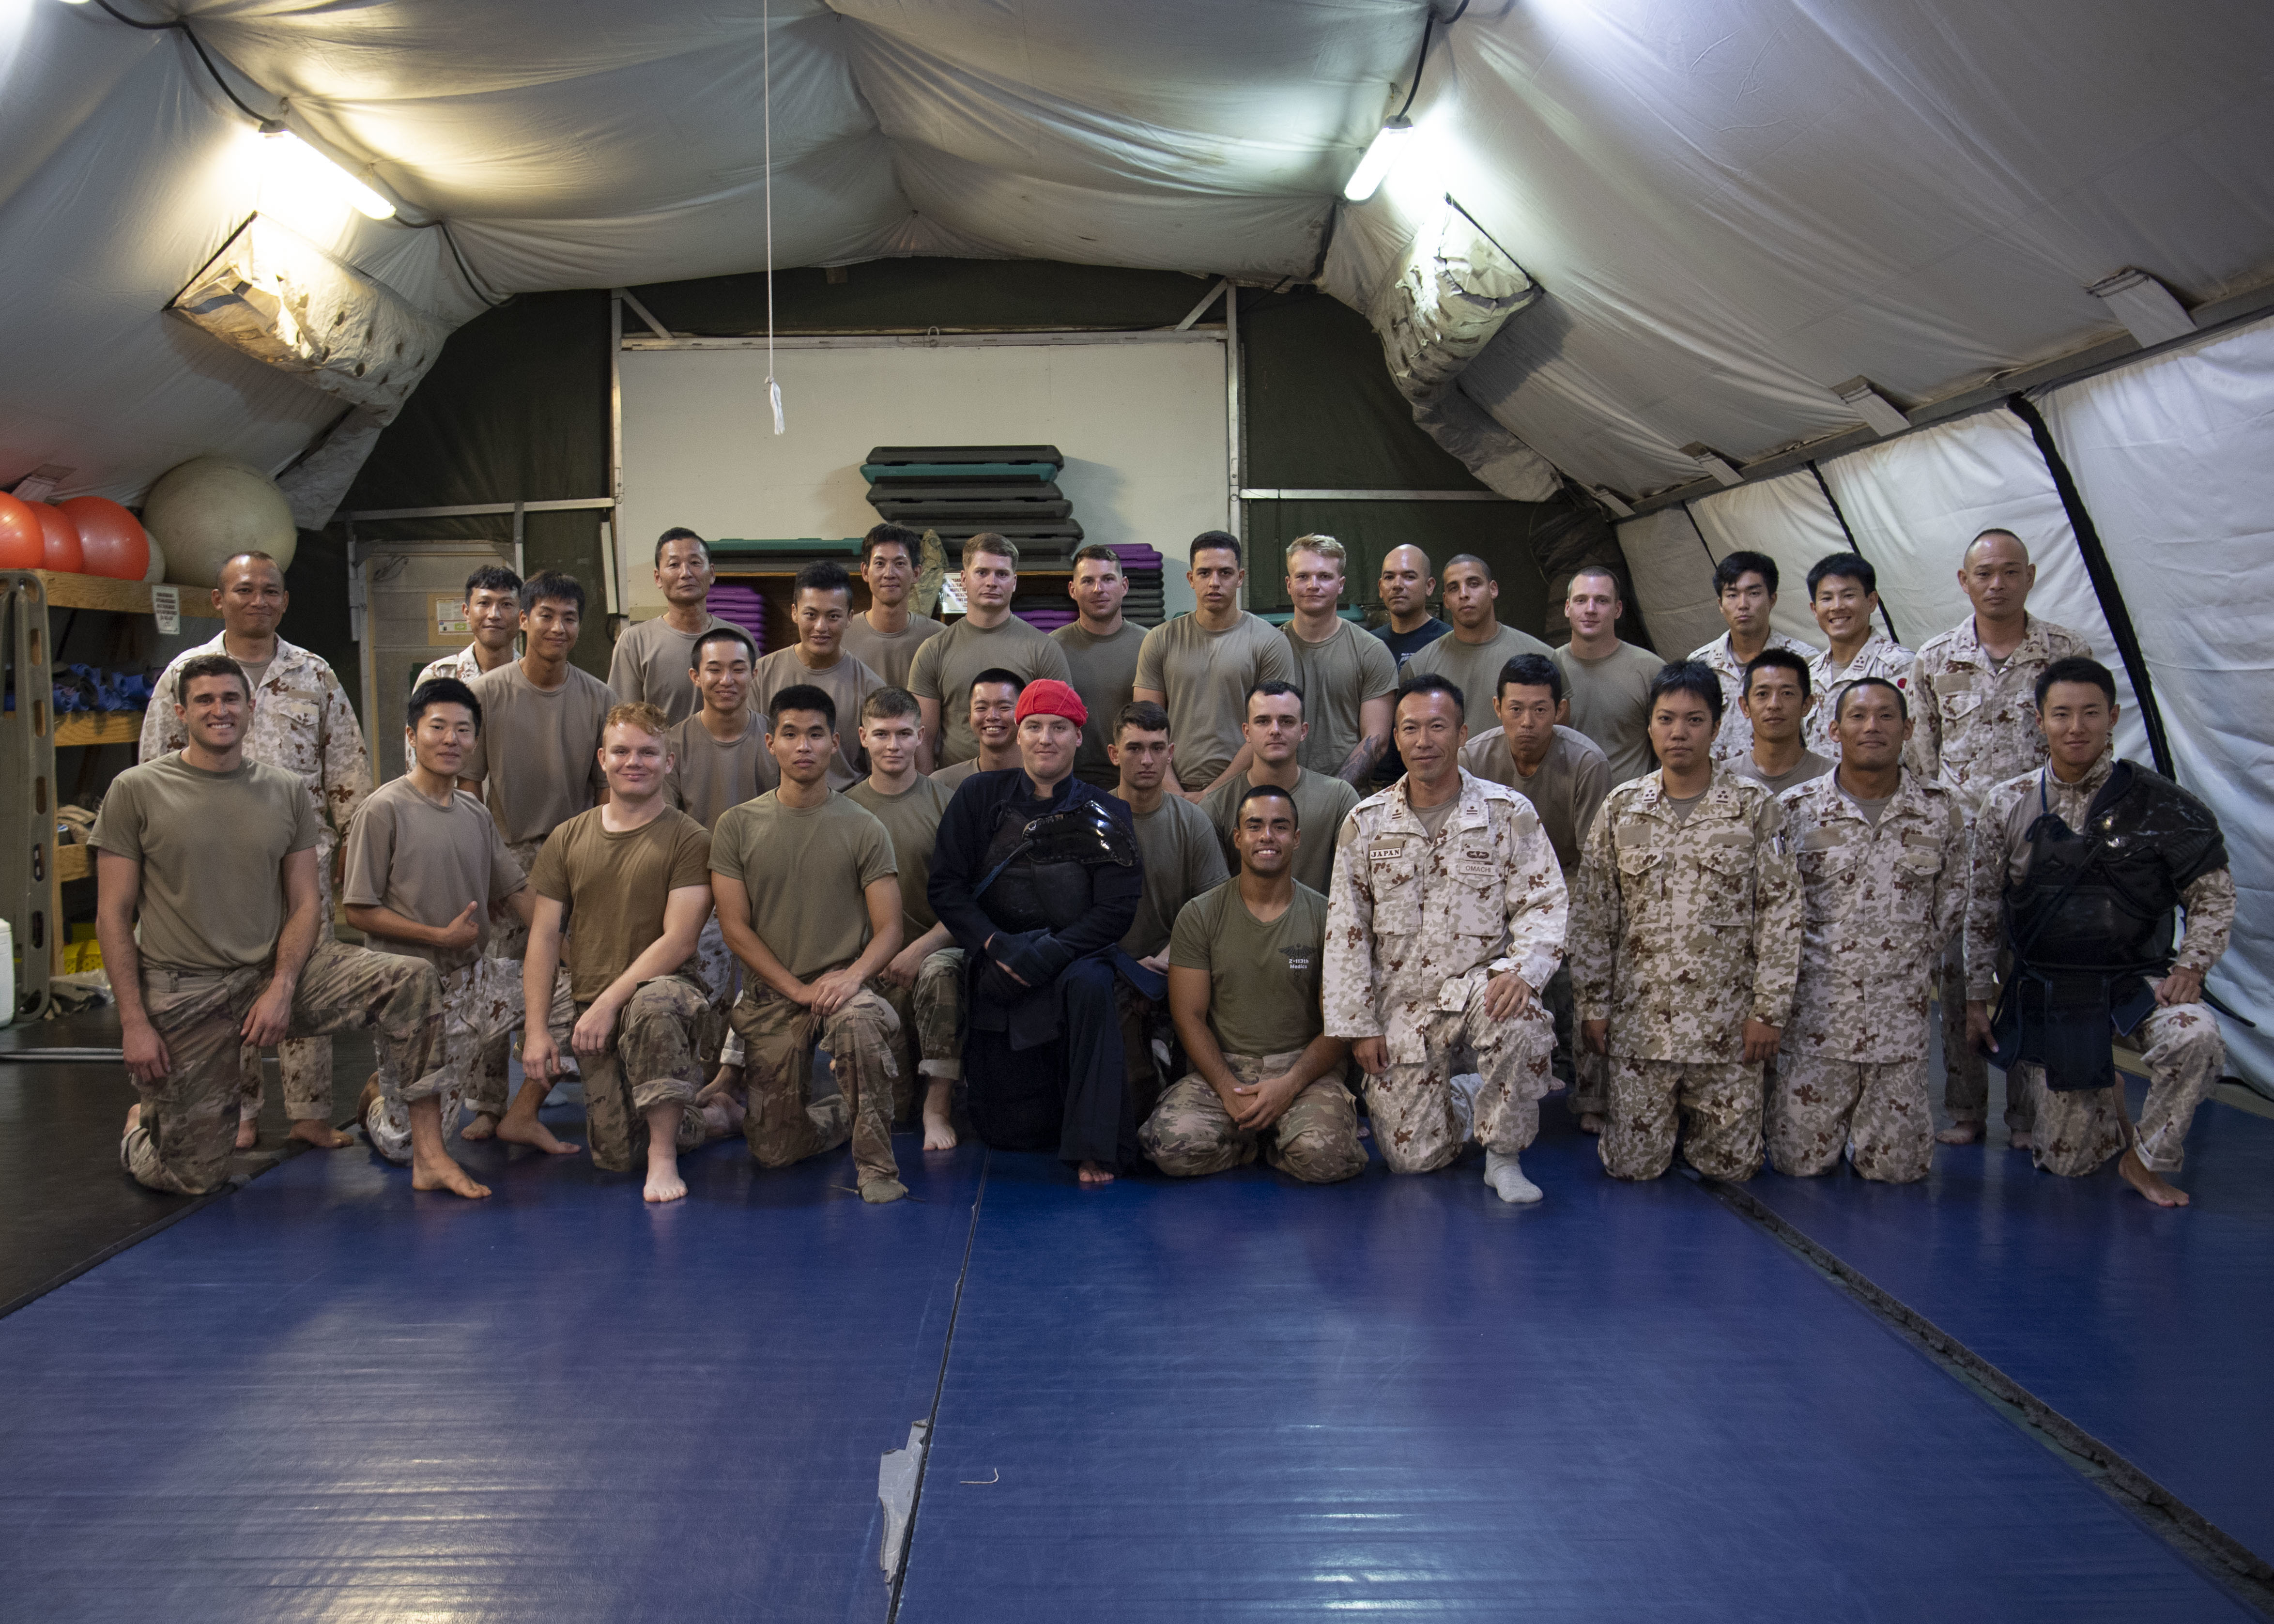 U.S. Army Soldiers assigned to Combined Joint Task Force-Horn of Africa (CJTF-HOA) and Japanese Ground Self-Defense Force (JGSDF) soldiers pose for a group photo after a combatives exchange at Camp Lemonnier, Djibouti, July 1, 2019. The purpose of the joint exchange was to share Japanese combative techniques and forge relationships between CJTF-HOA and the JGSDF. (U.S. Air Force photo by Staff Sgt. J.D. Strong II) (U.S. Air Force photo by Staff Sgt. J.D. Strong II)